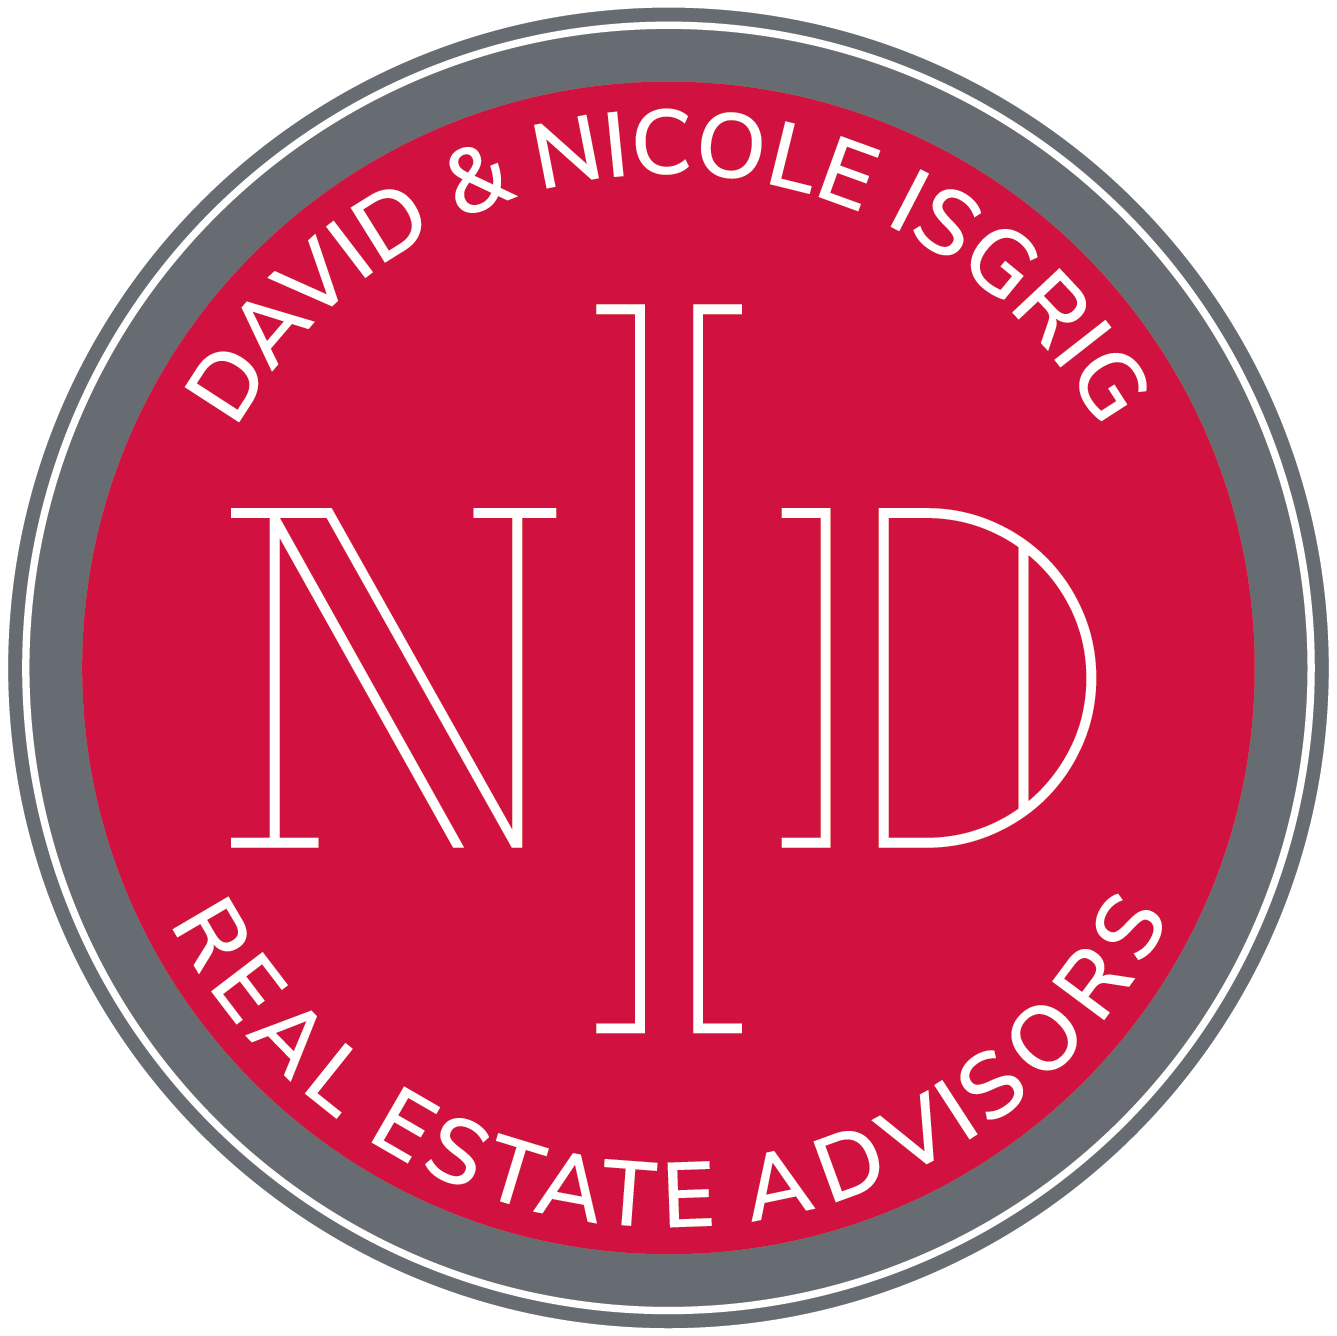 David and Nicole Isgrig Logo